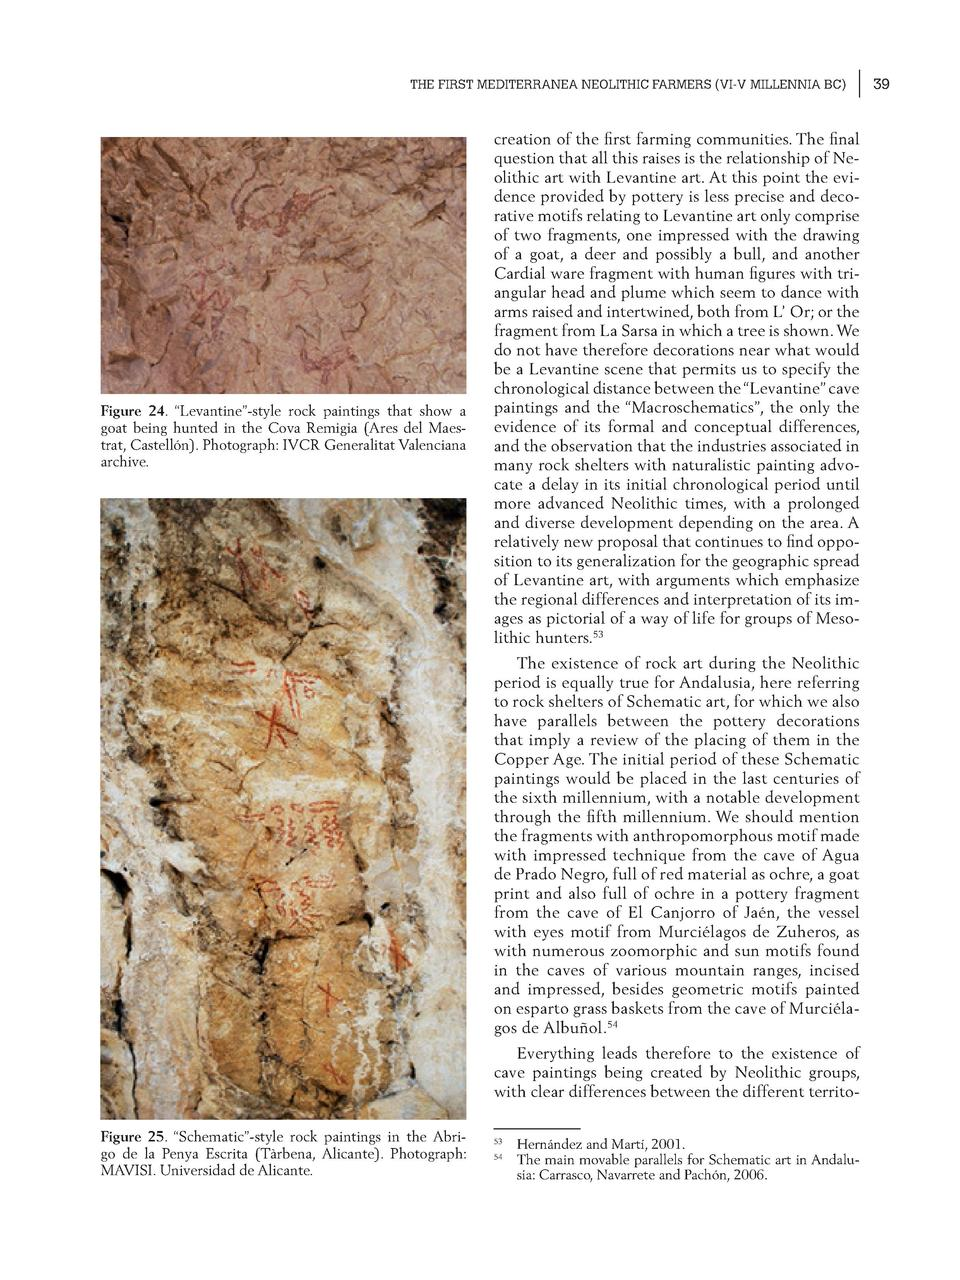 THE FIRST MEDITERRANEA NEOLITHIC FARMERS  VI-V MILLENNIA BC   Figure 24.    Levantine   -style rock paintings that show a ...